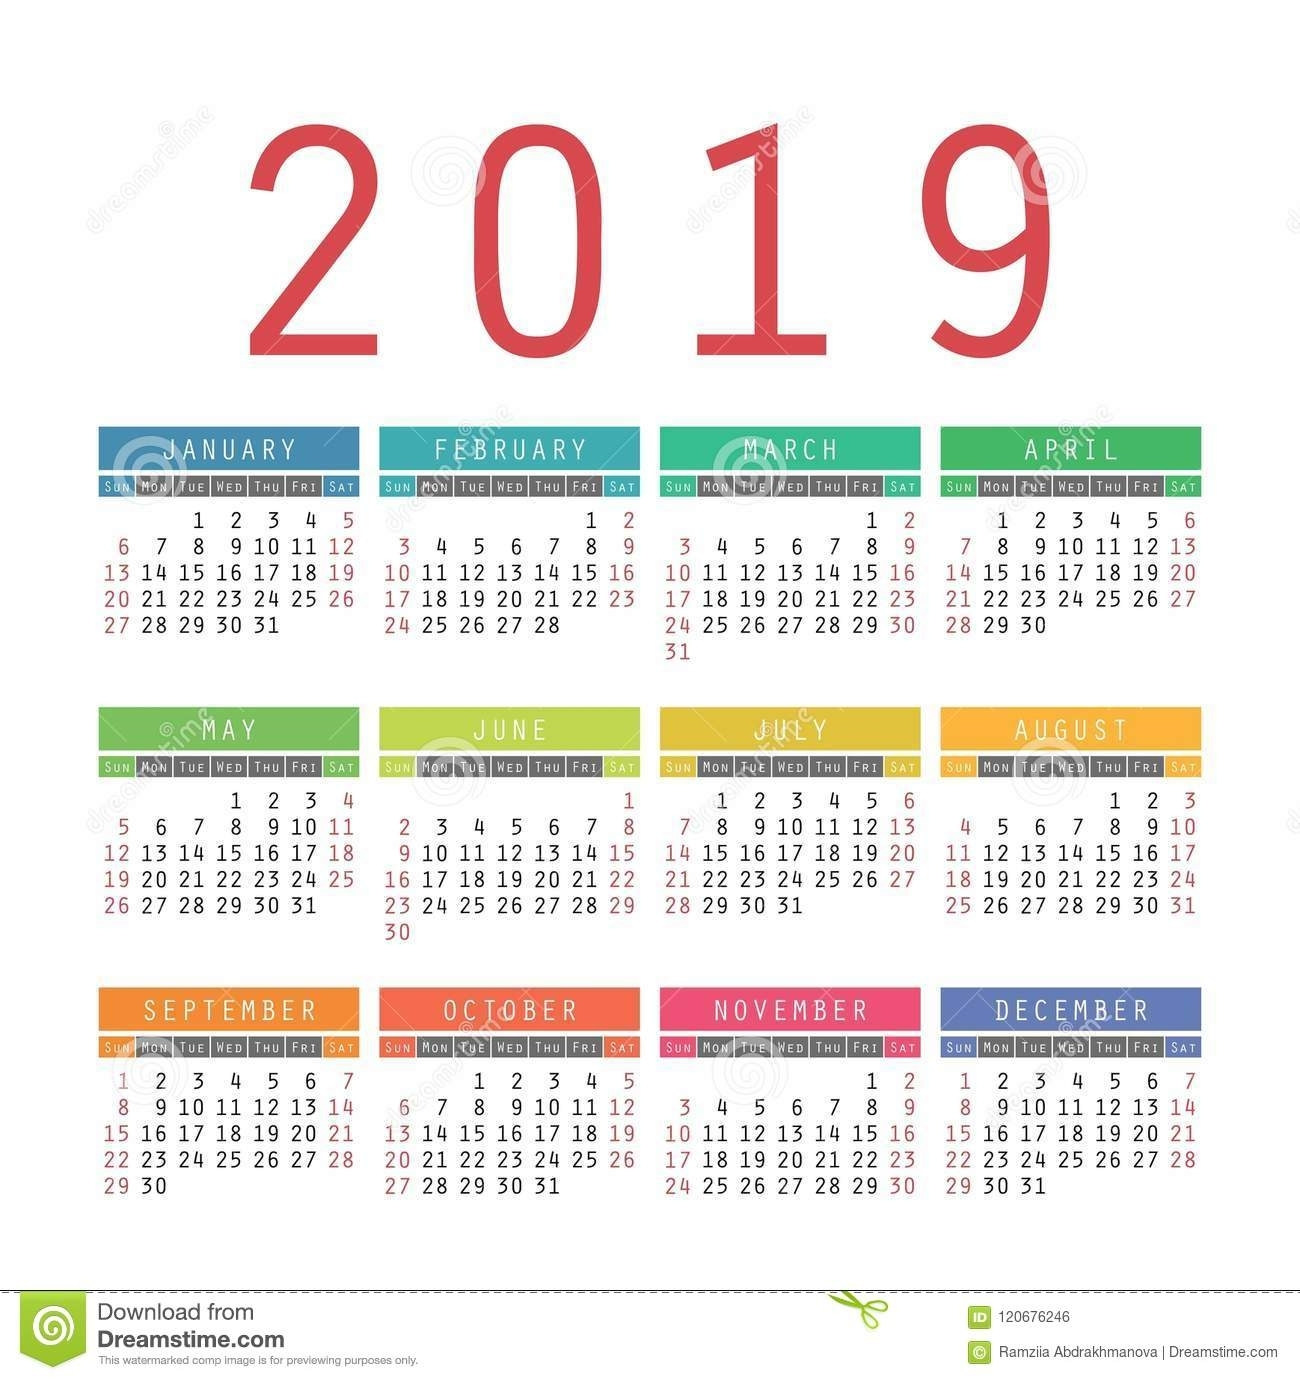 Blank Calendar 2019 Free Download Calendar Templates. 2019 Simple regarding Year At A Glance Calendar Simple Design